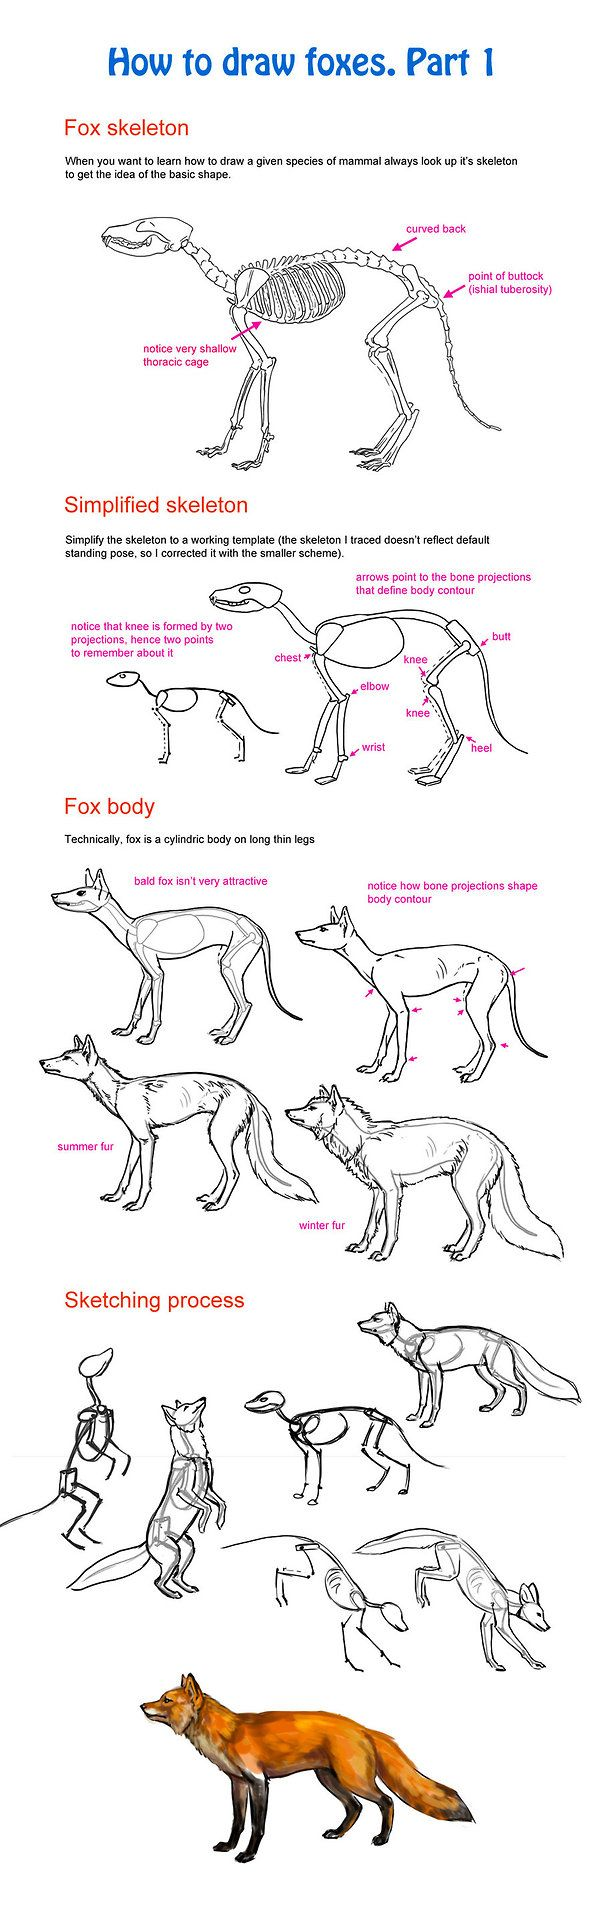 38 best ANATOMIE images on Pinterest   Anatomy, Anatomy reference ...